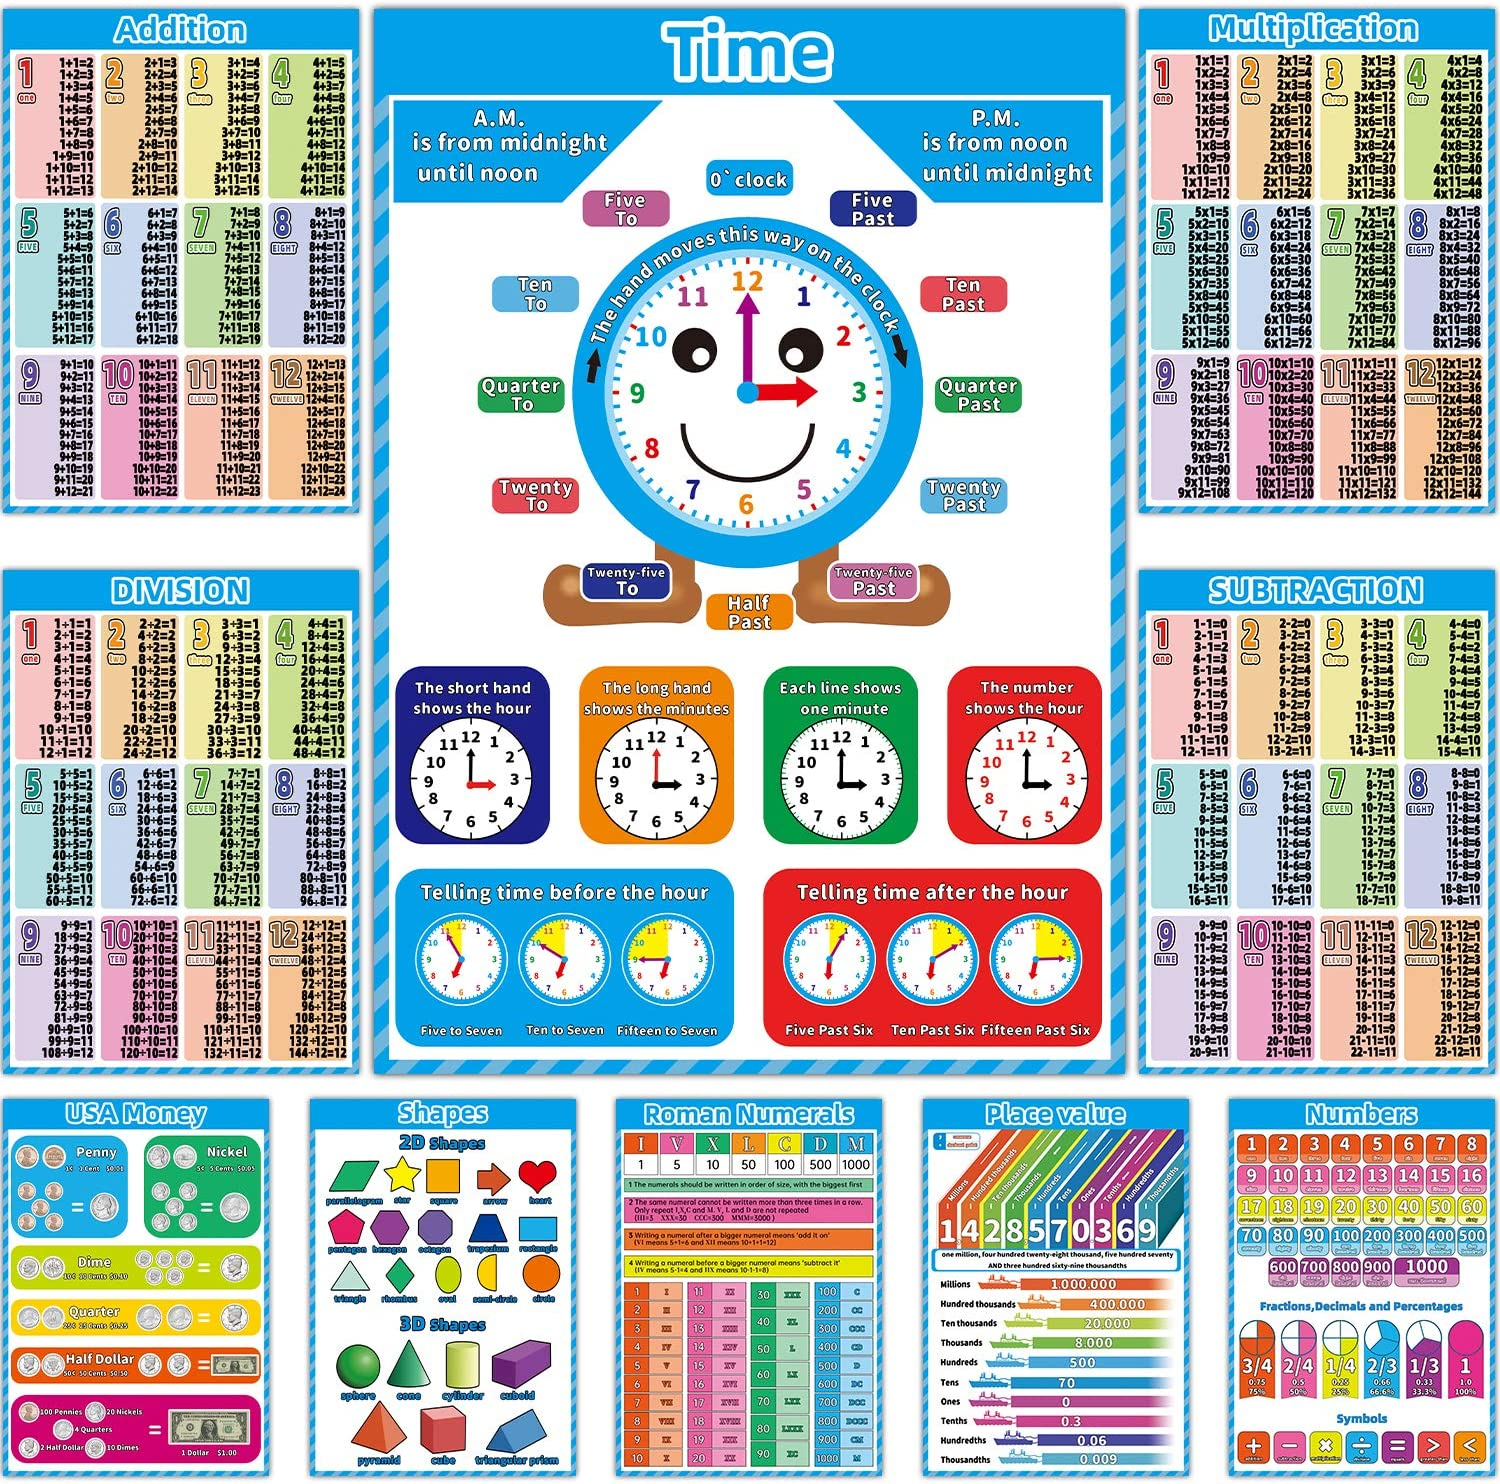 11 Educational Math Posters for Kids Math Charts for Elementary Classrooms Includes Multiplication, Division, Numbers, Addition, Time,Subtraction, Shapes, Fractions, Place Value, And More Size 17x12